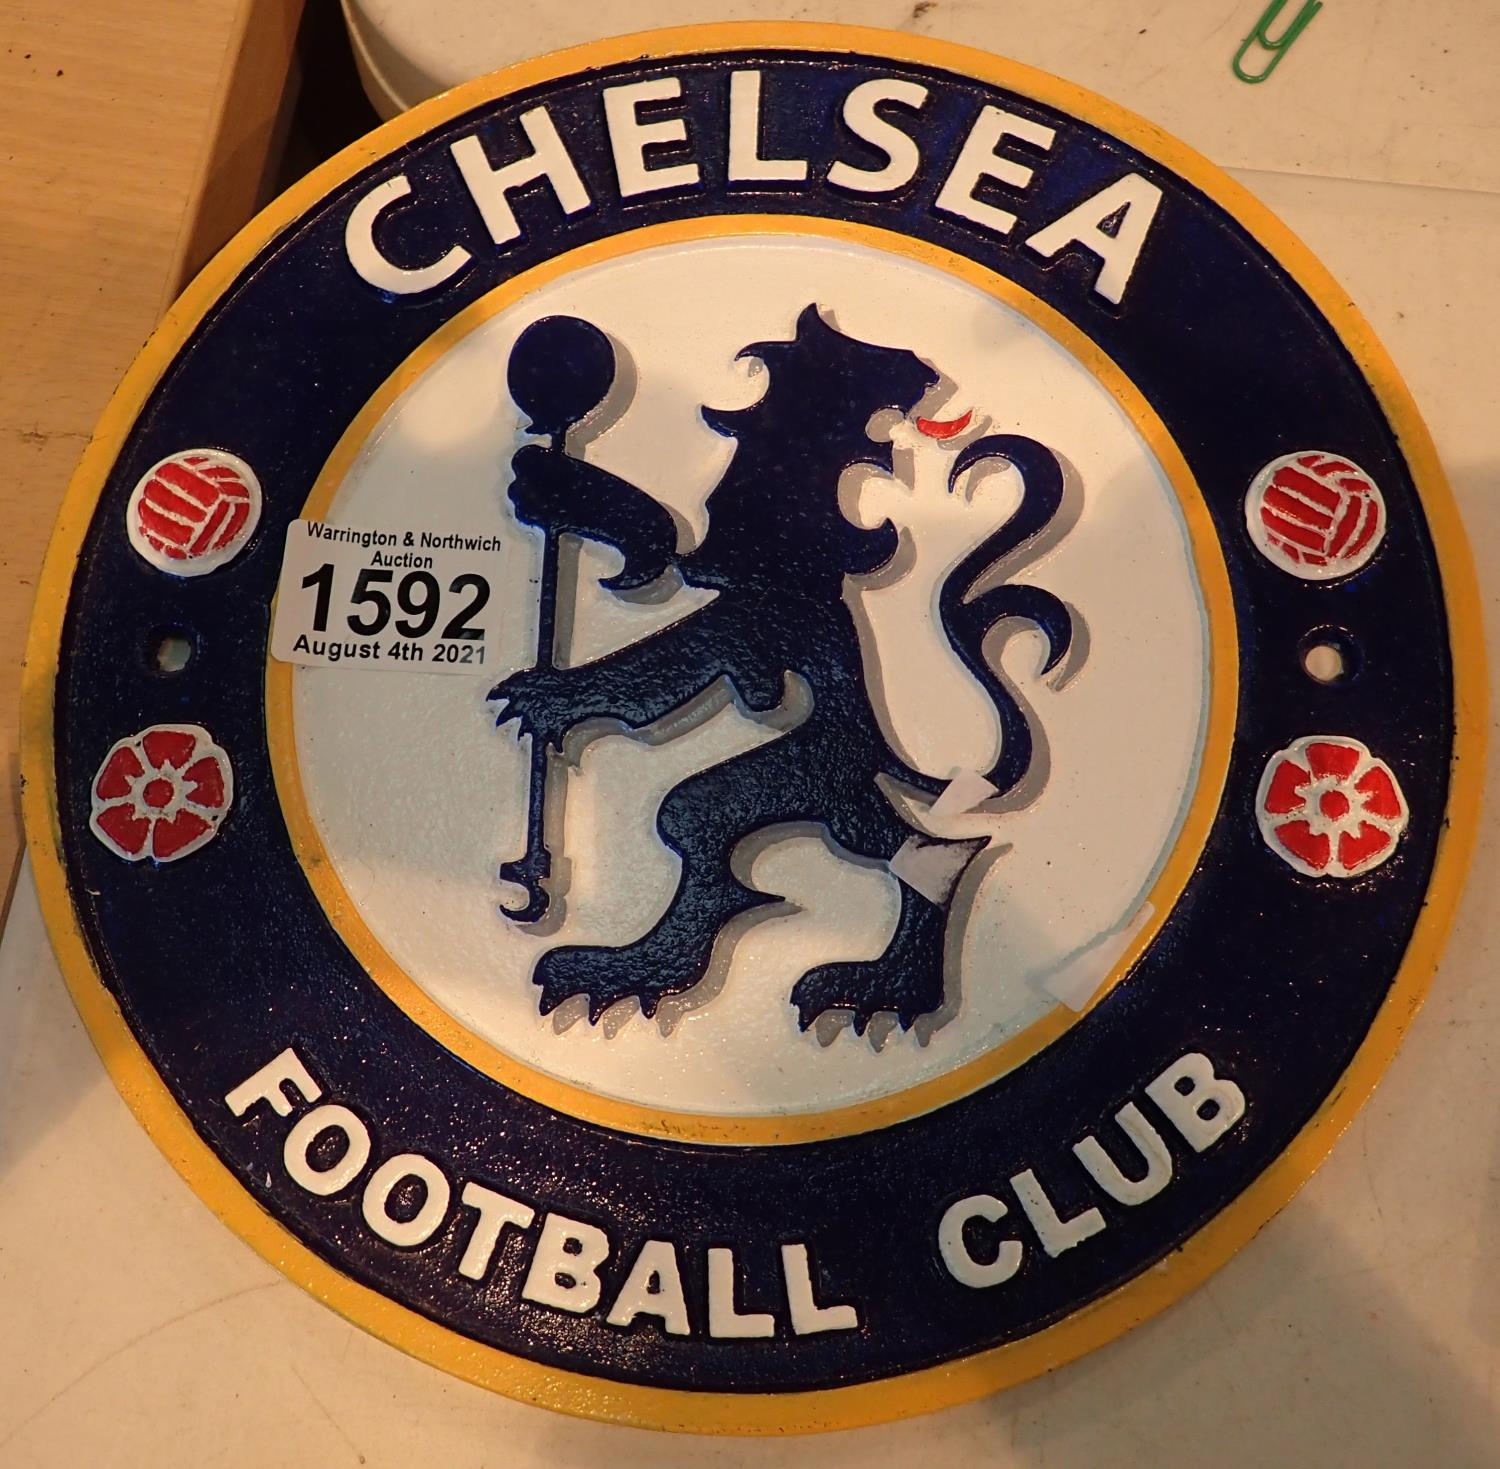 Cast iron Chelsea Football Club sign, D: 25 cm. P&P Group 2 (£18+VAT for the first lot and £3+VAT